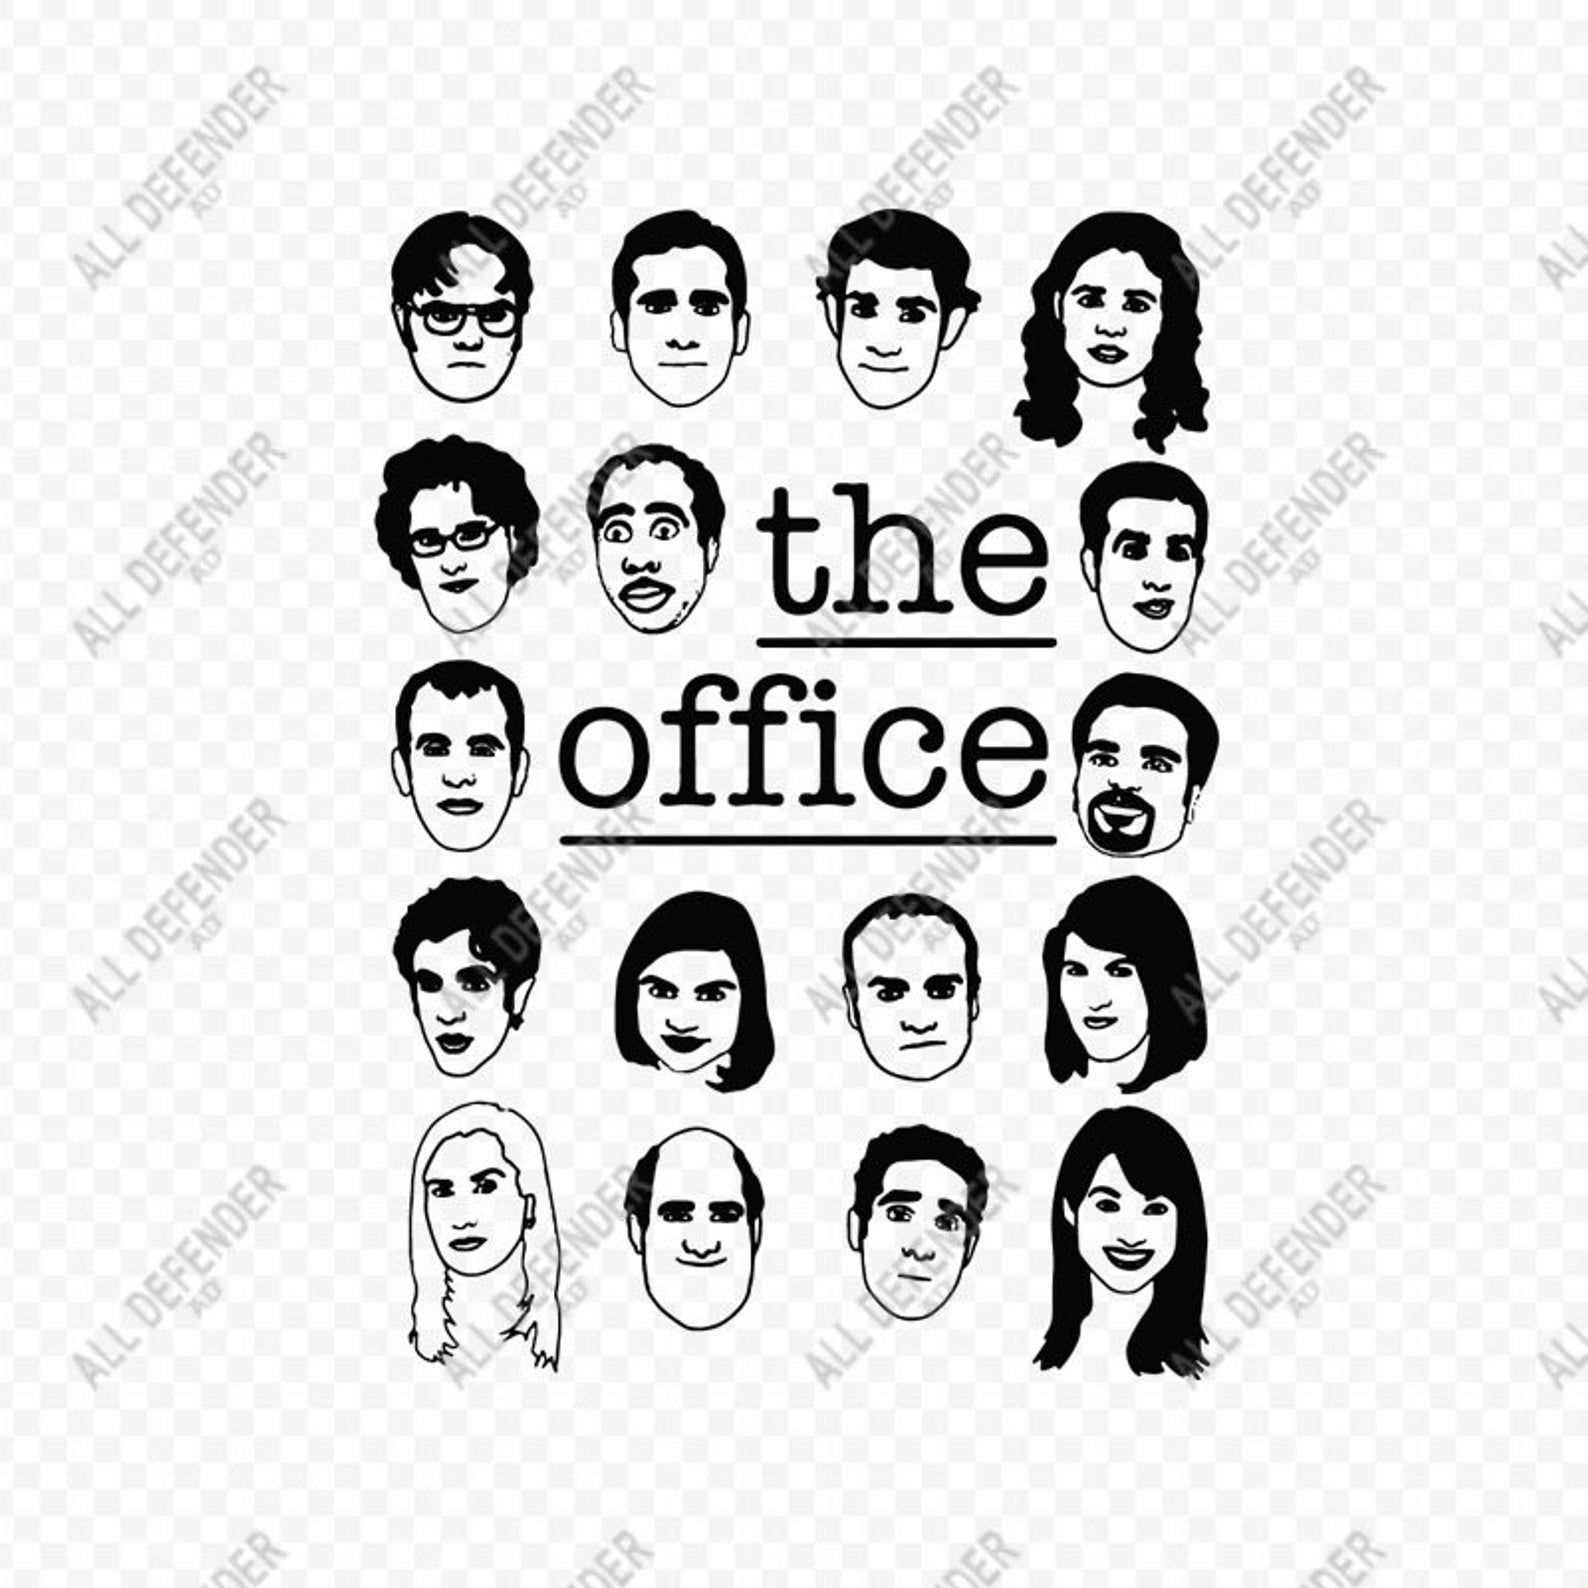 The Office Cast Svg Schrute Farms Svg Dwight Schrute Svg